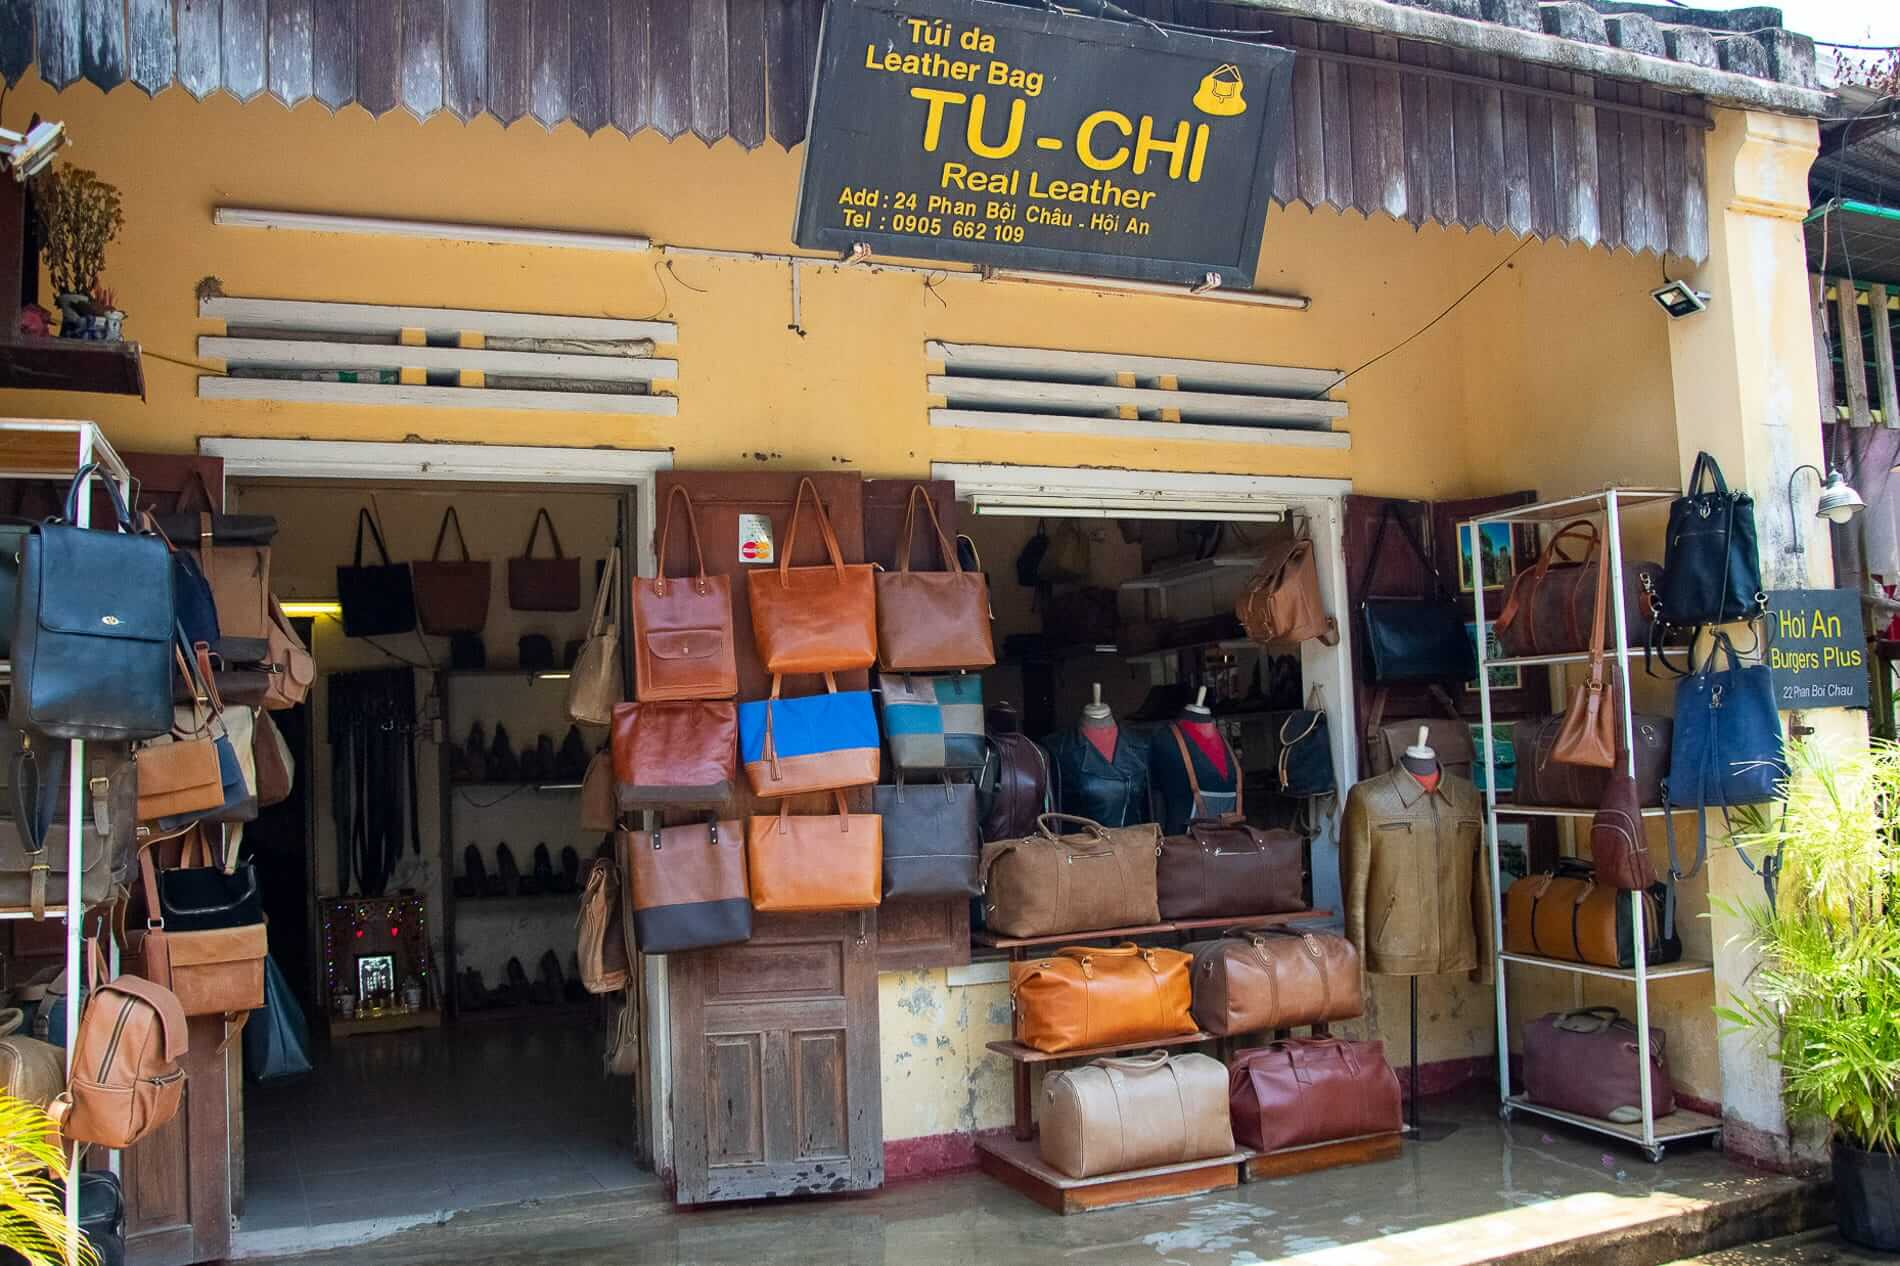 Tu Chi Hana - Leather shops